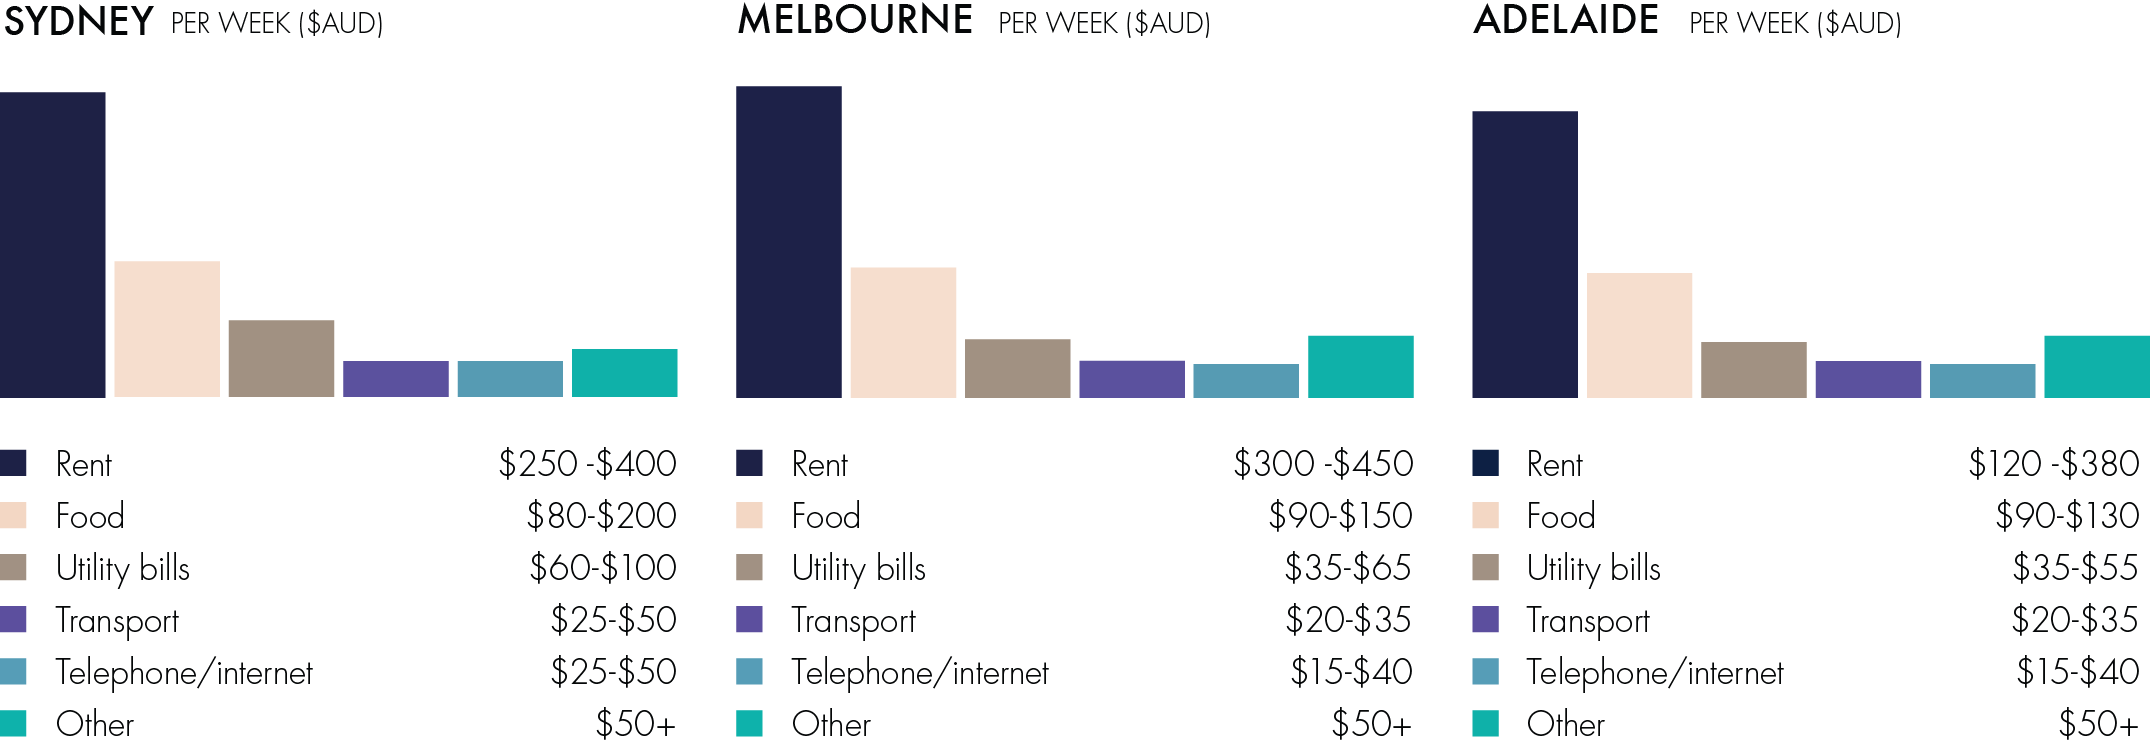 Comparative cost of living graphic for Sydney, Melbourne and Adelaide